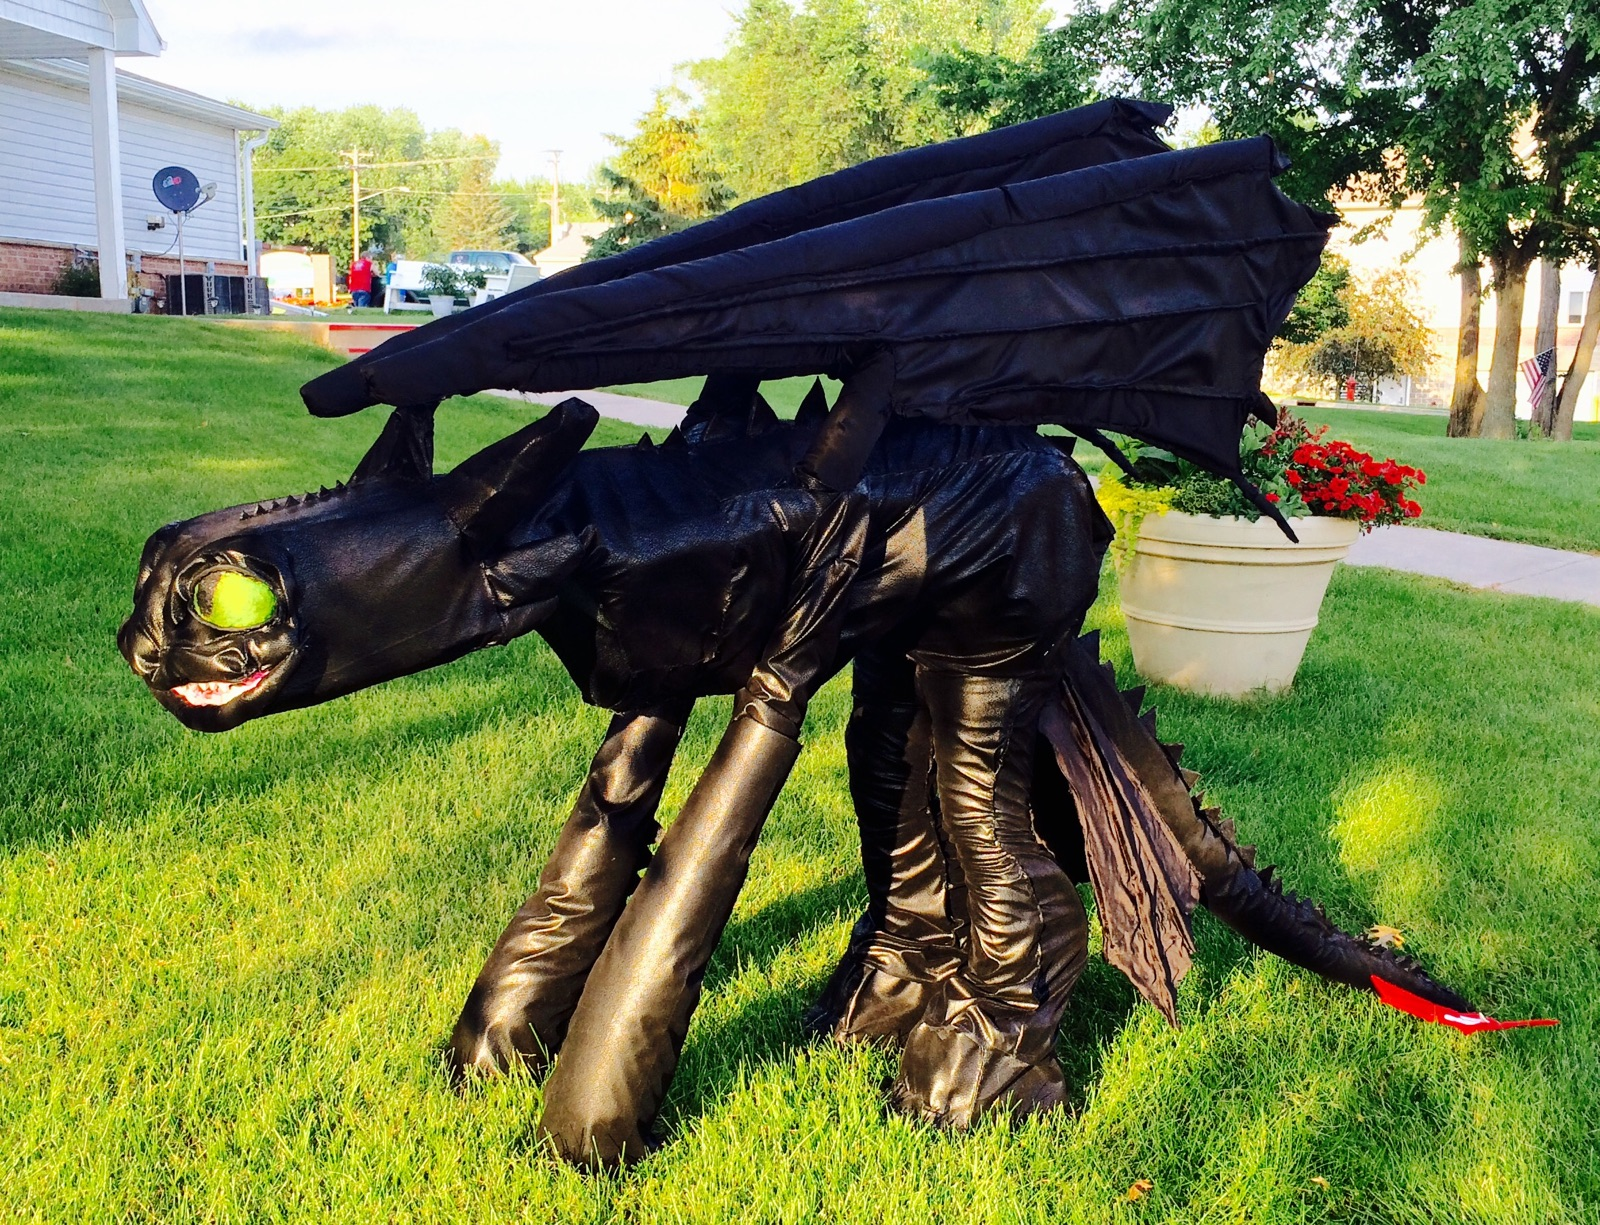 Convergence 2015 Hase And Gone, The Wonderful Convention Where I  Debuted My Toothless Quadsuit But Before We Jump To The Convention  Attendee's